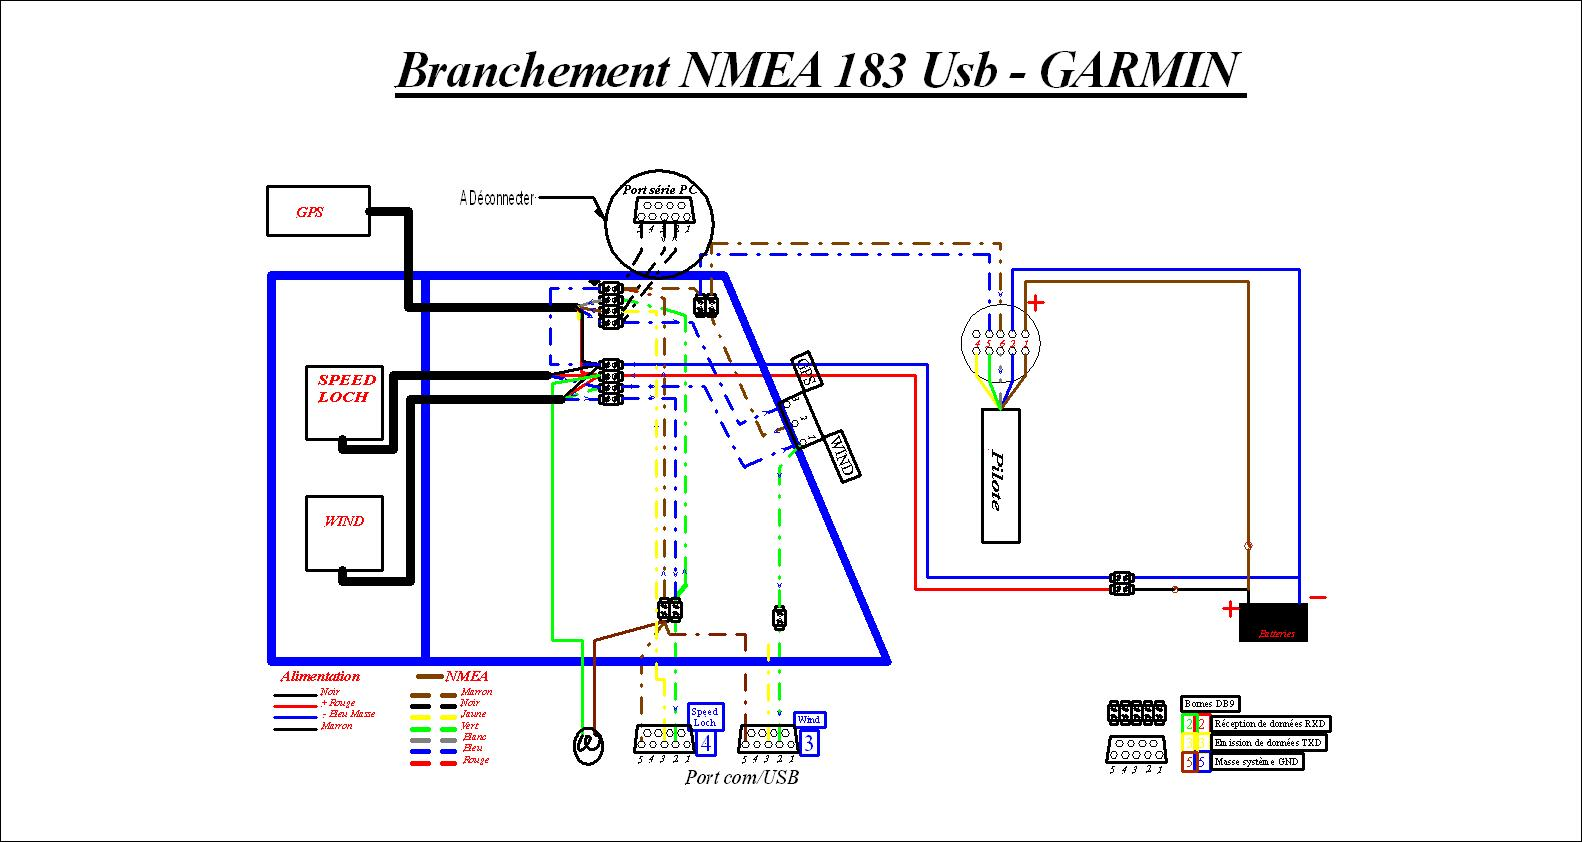 hight resolution of ais nmea 0183 wiring diagram to microphone wiring diagram garmin nmea 2000 cable wiring diagram lowrance nmea cable wiring diagram